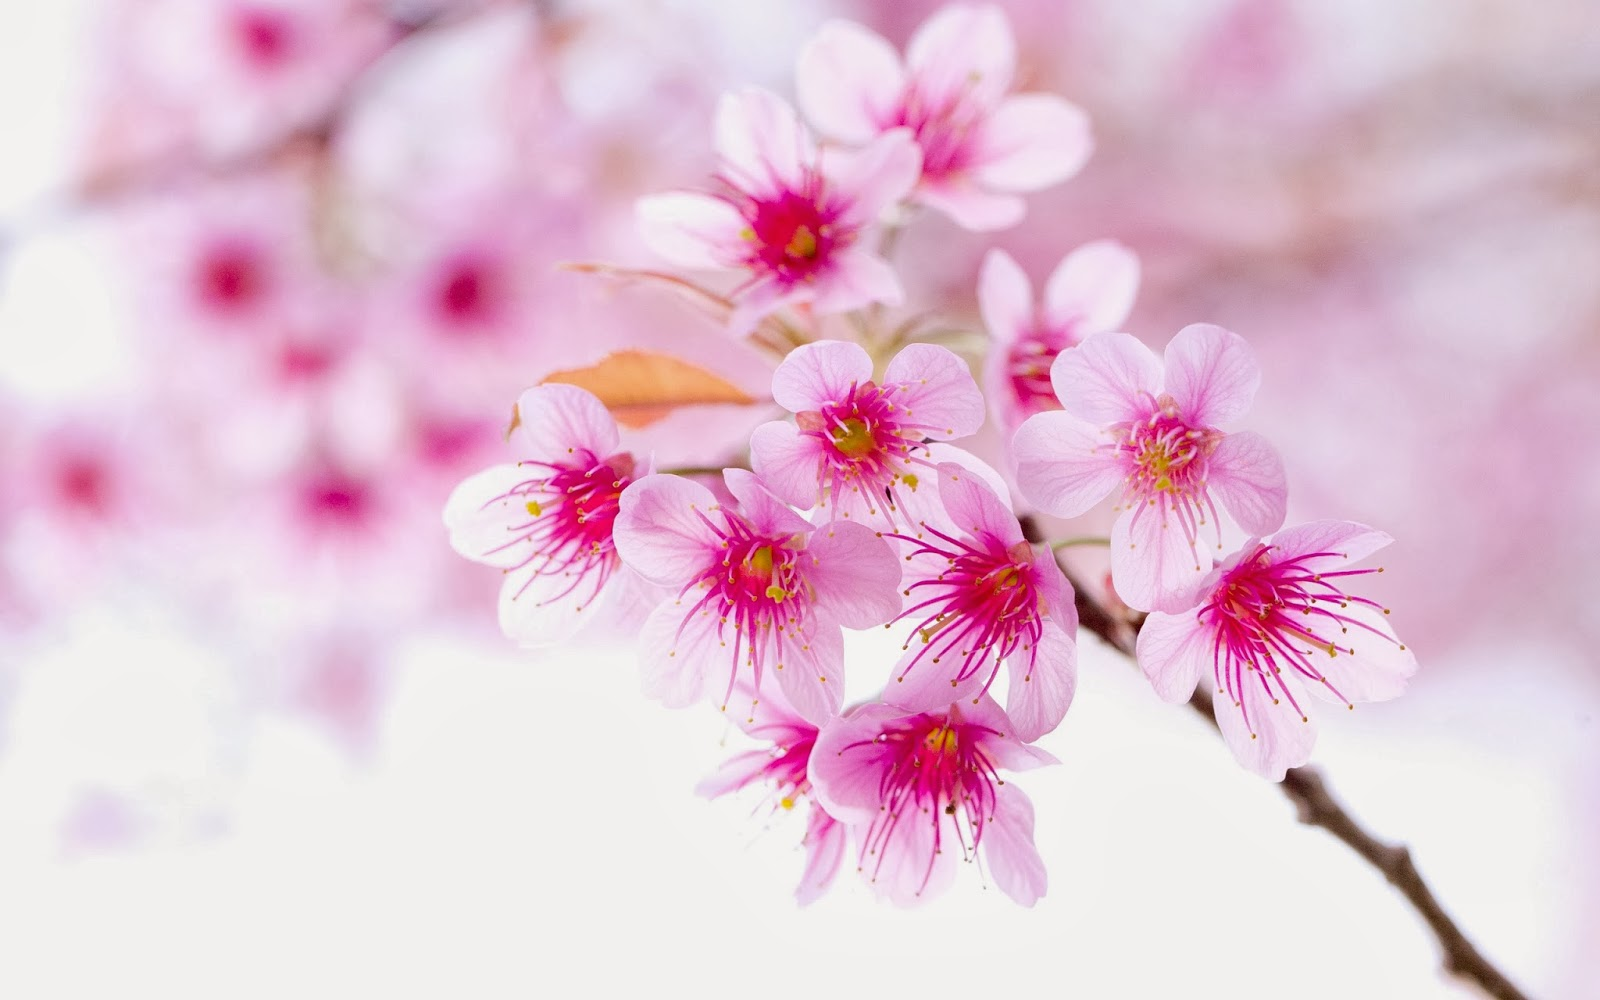 Cute pink flowers flowers wallpapers Cherry blossom pictures